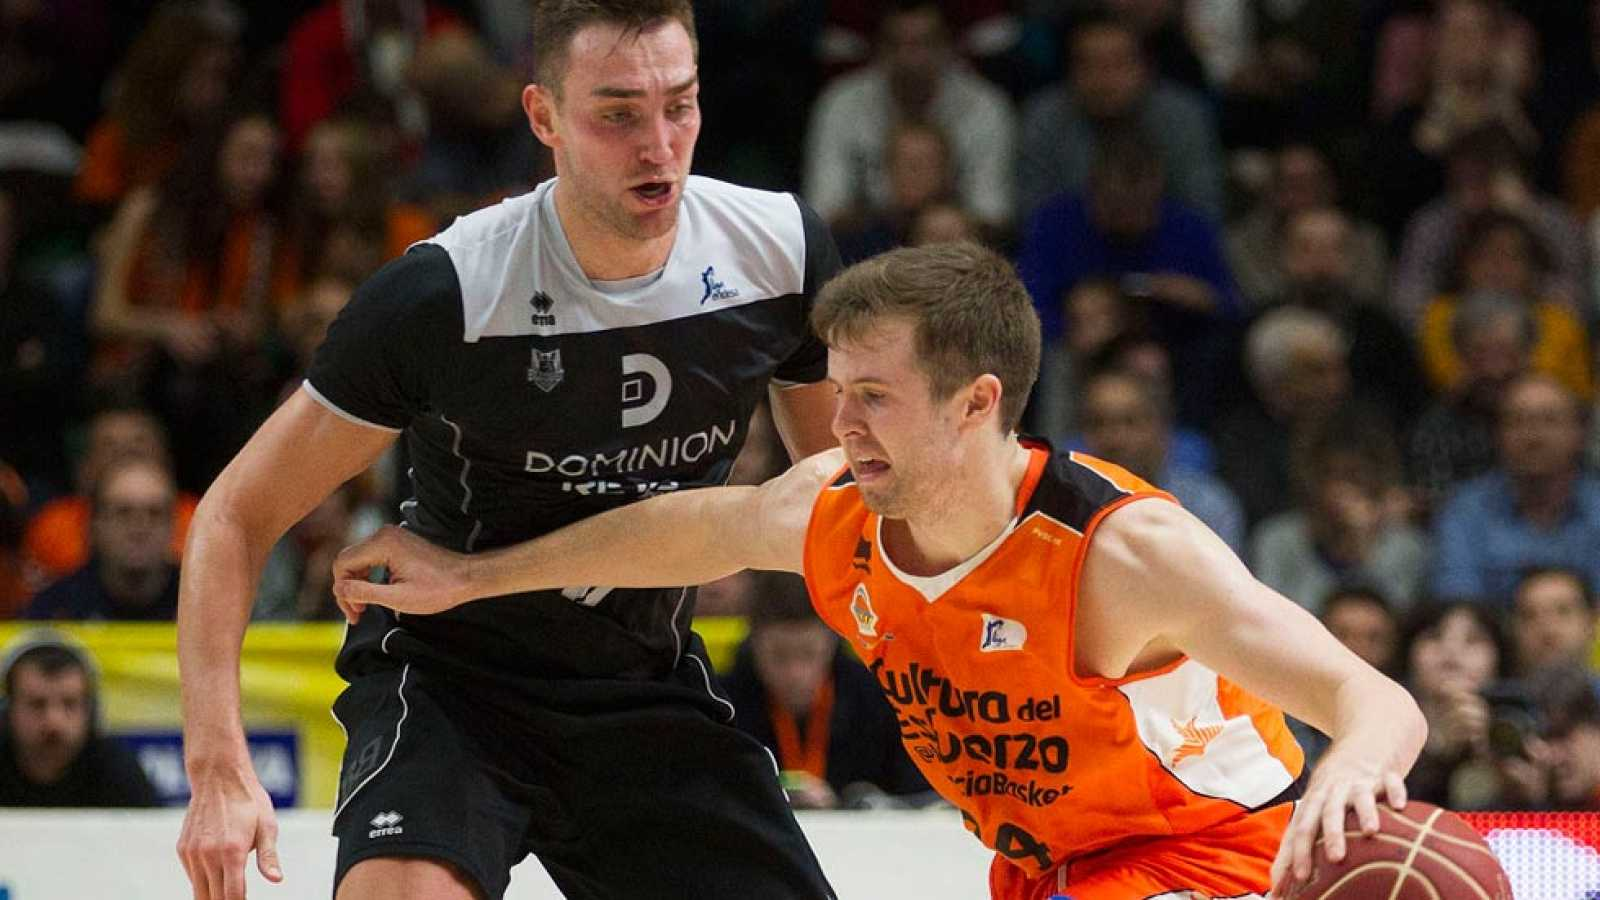 Valencia Basket 85-49 Dominion Bilbao Basket